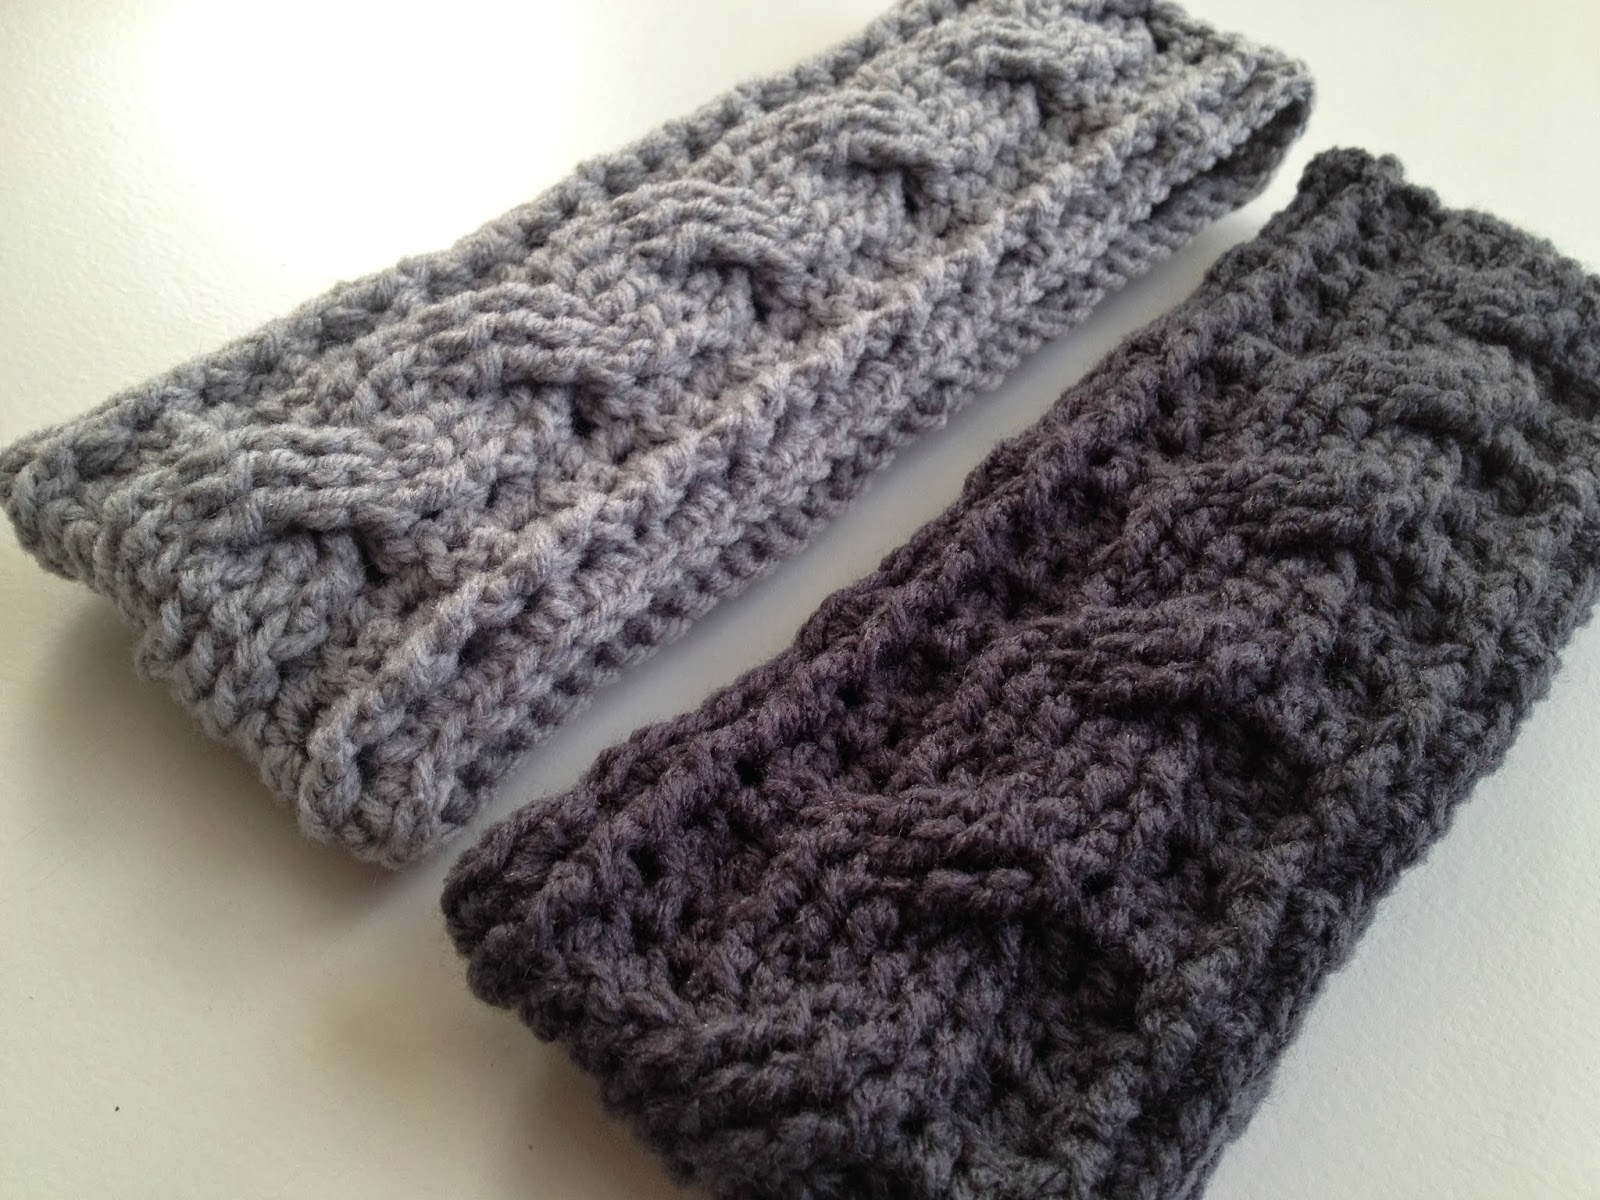 Crochet Ear Warmer : Crocheted Ear Warmer Cake Ideas and Designs